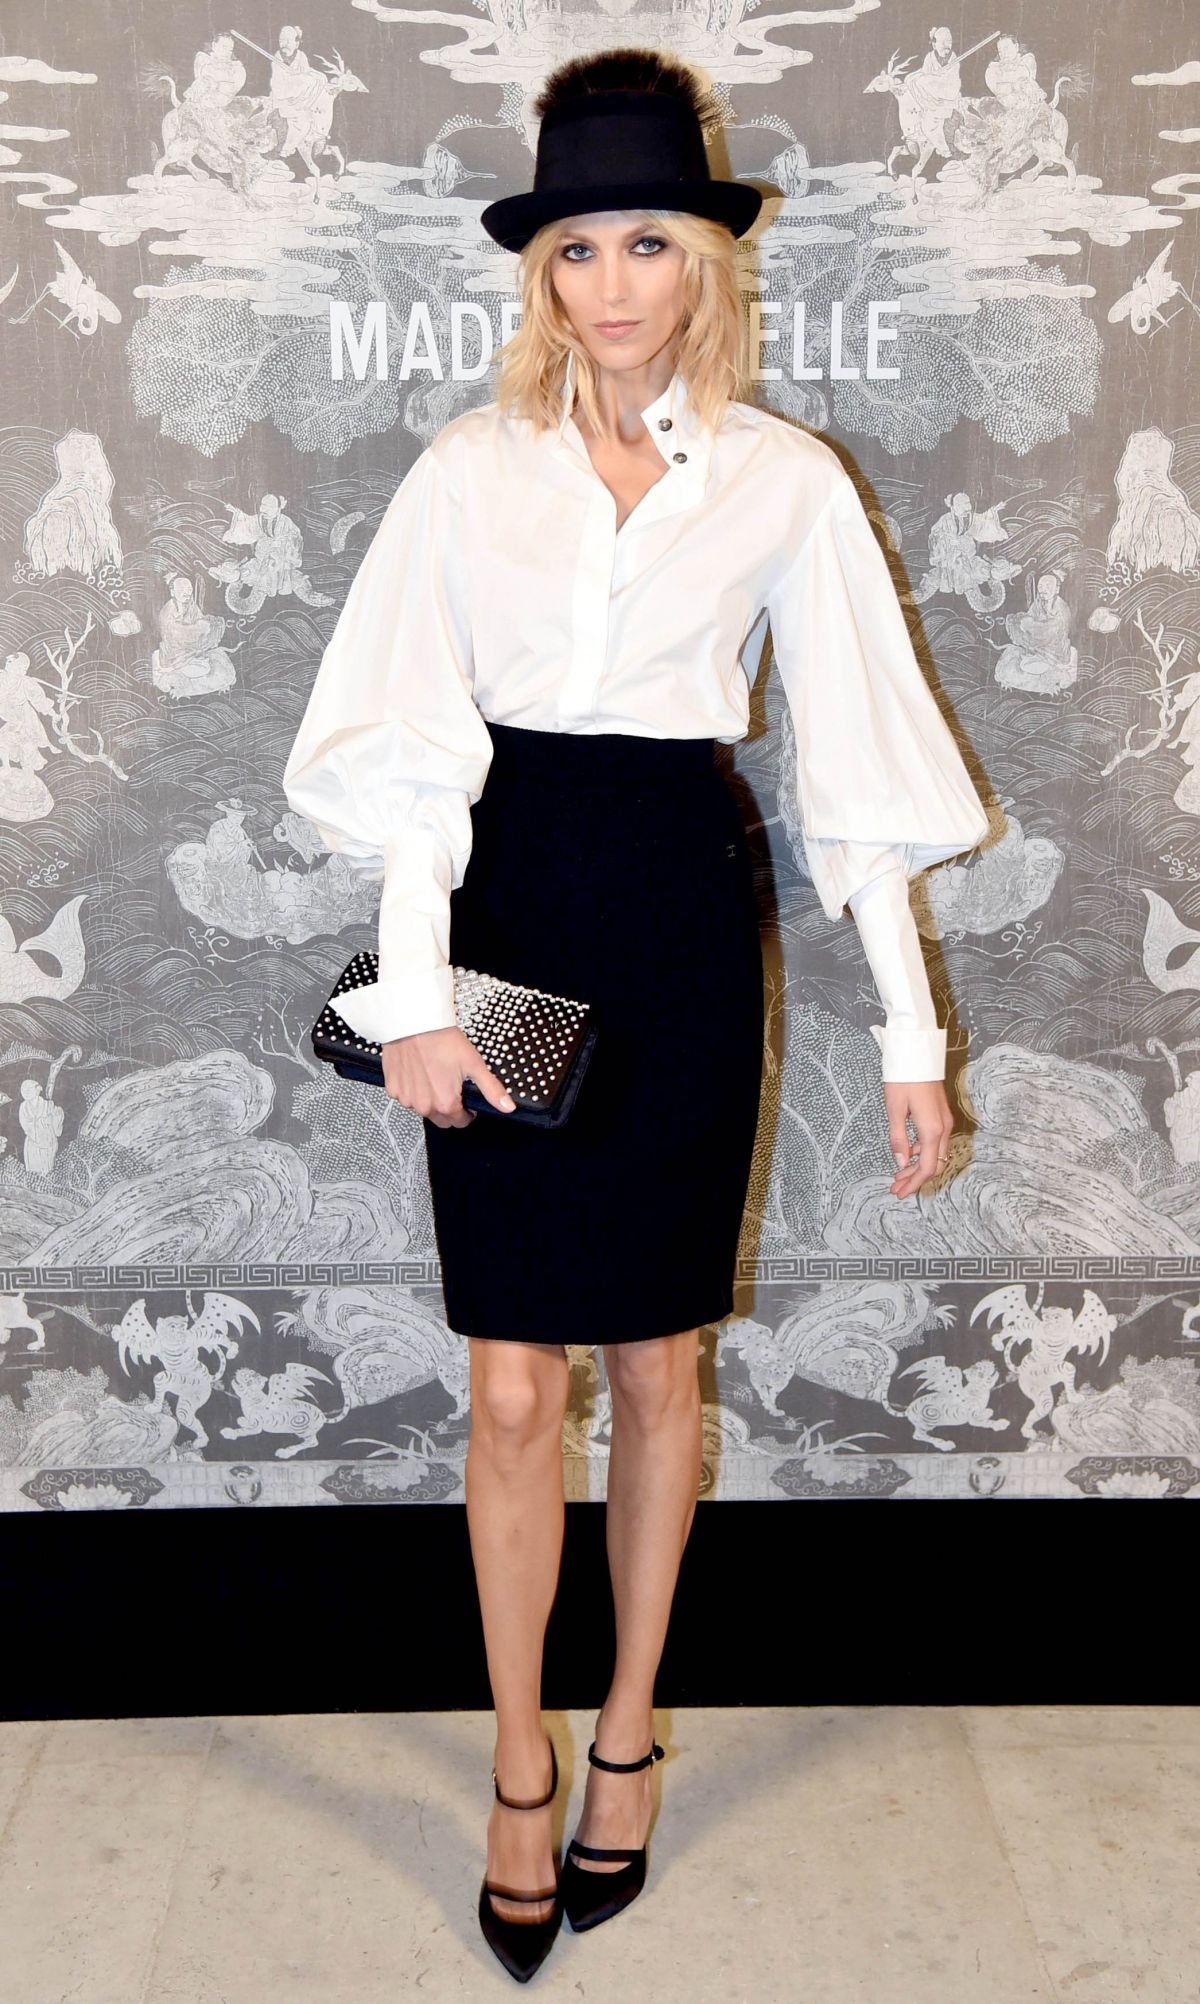 ANJA RUBIK at Chanel Exhibition Party in London 10/12/2015